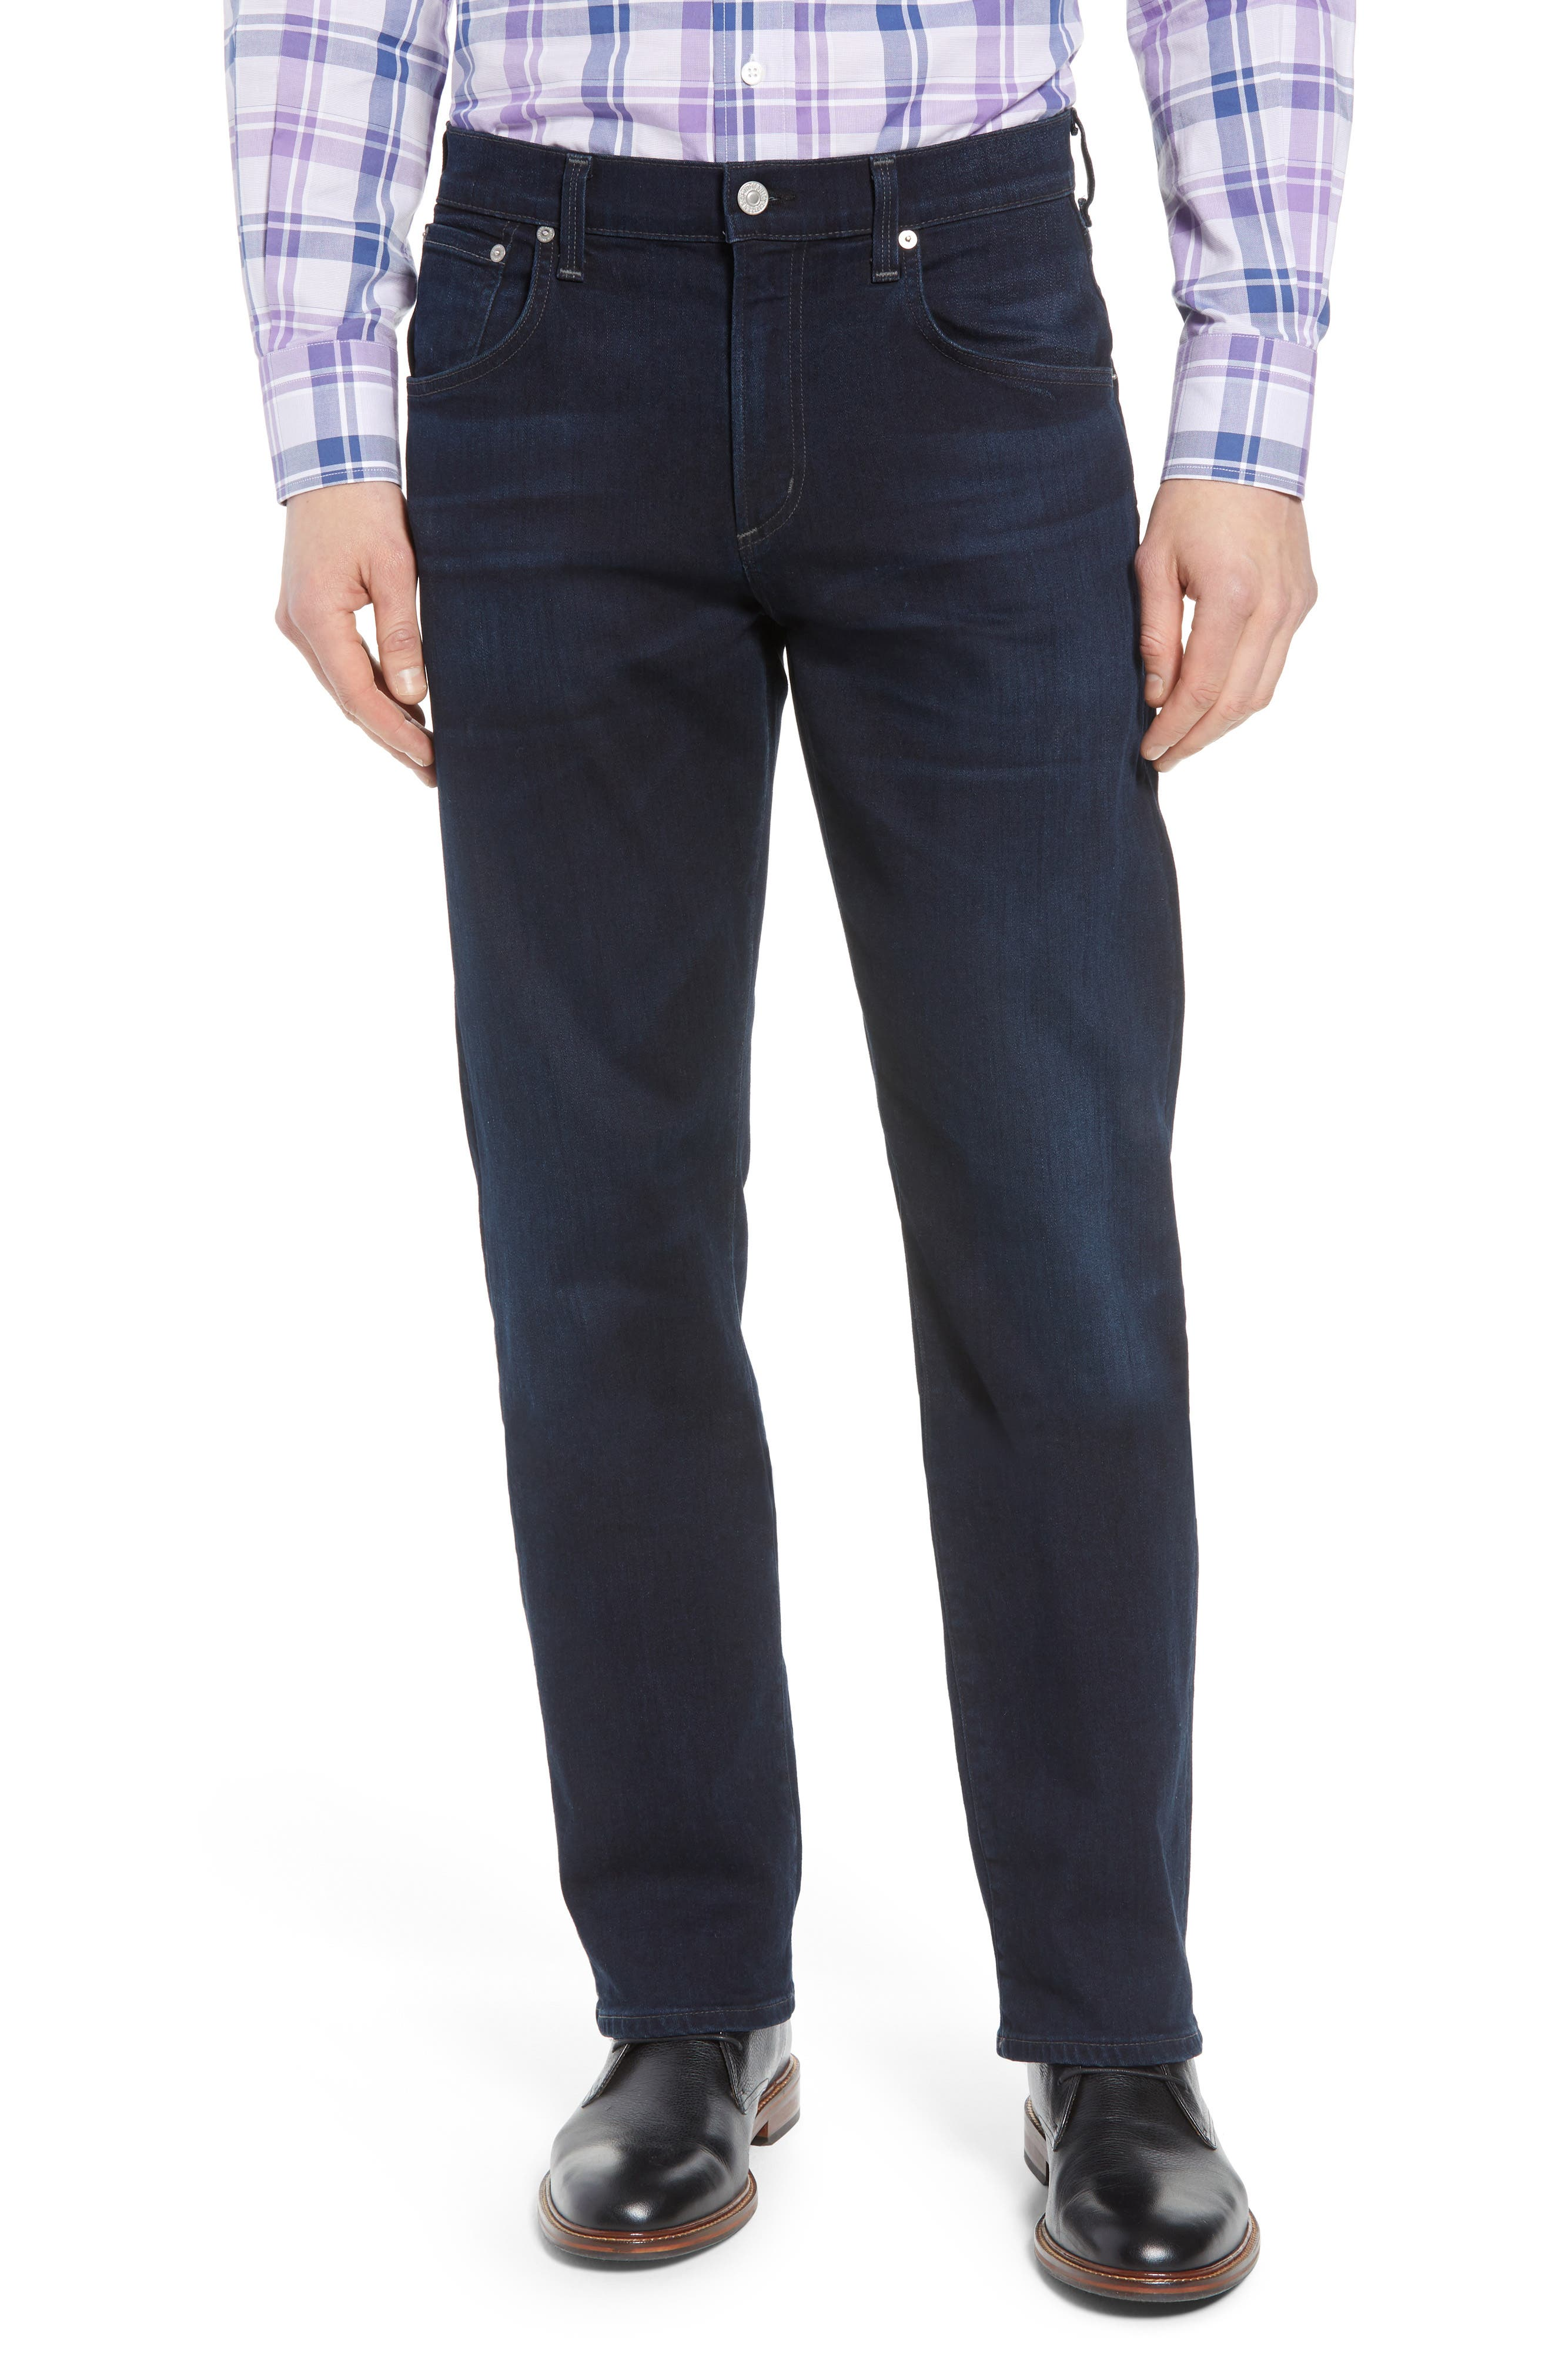 Citzens of Humanity Perfect Relaxed Fit Jeans,                         Main,                         color, Miles